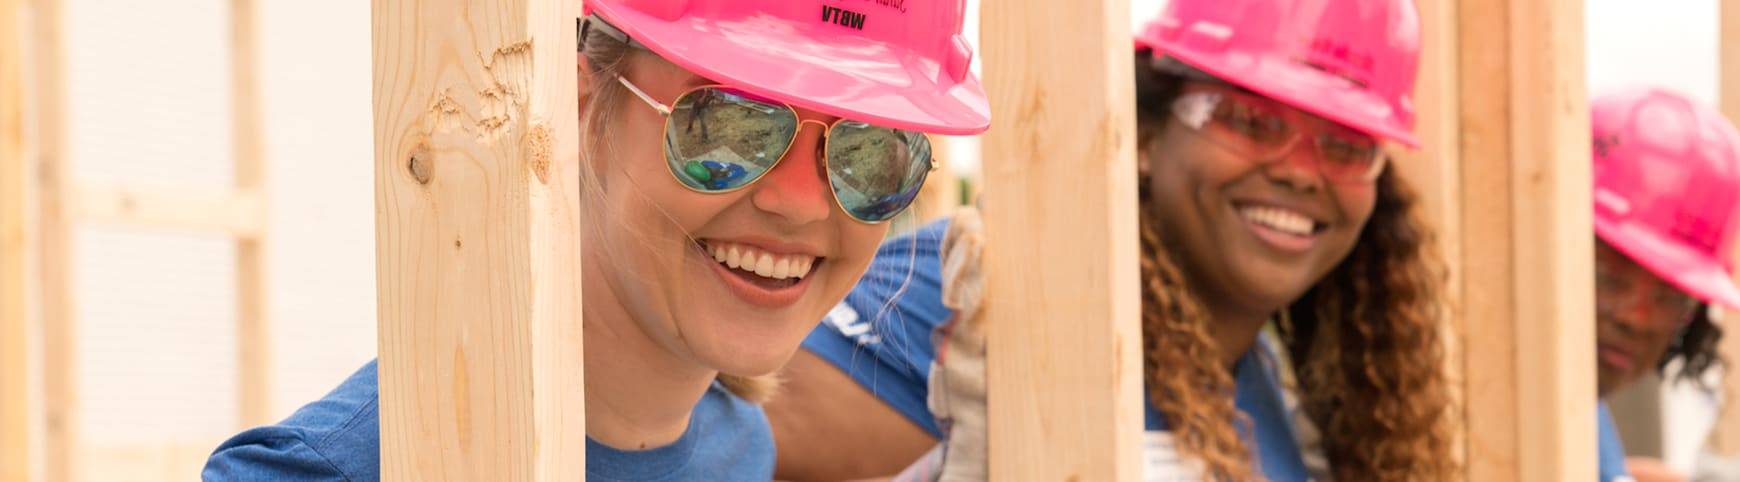 News & Media, Habitat for Humanity Waterloo